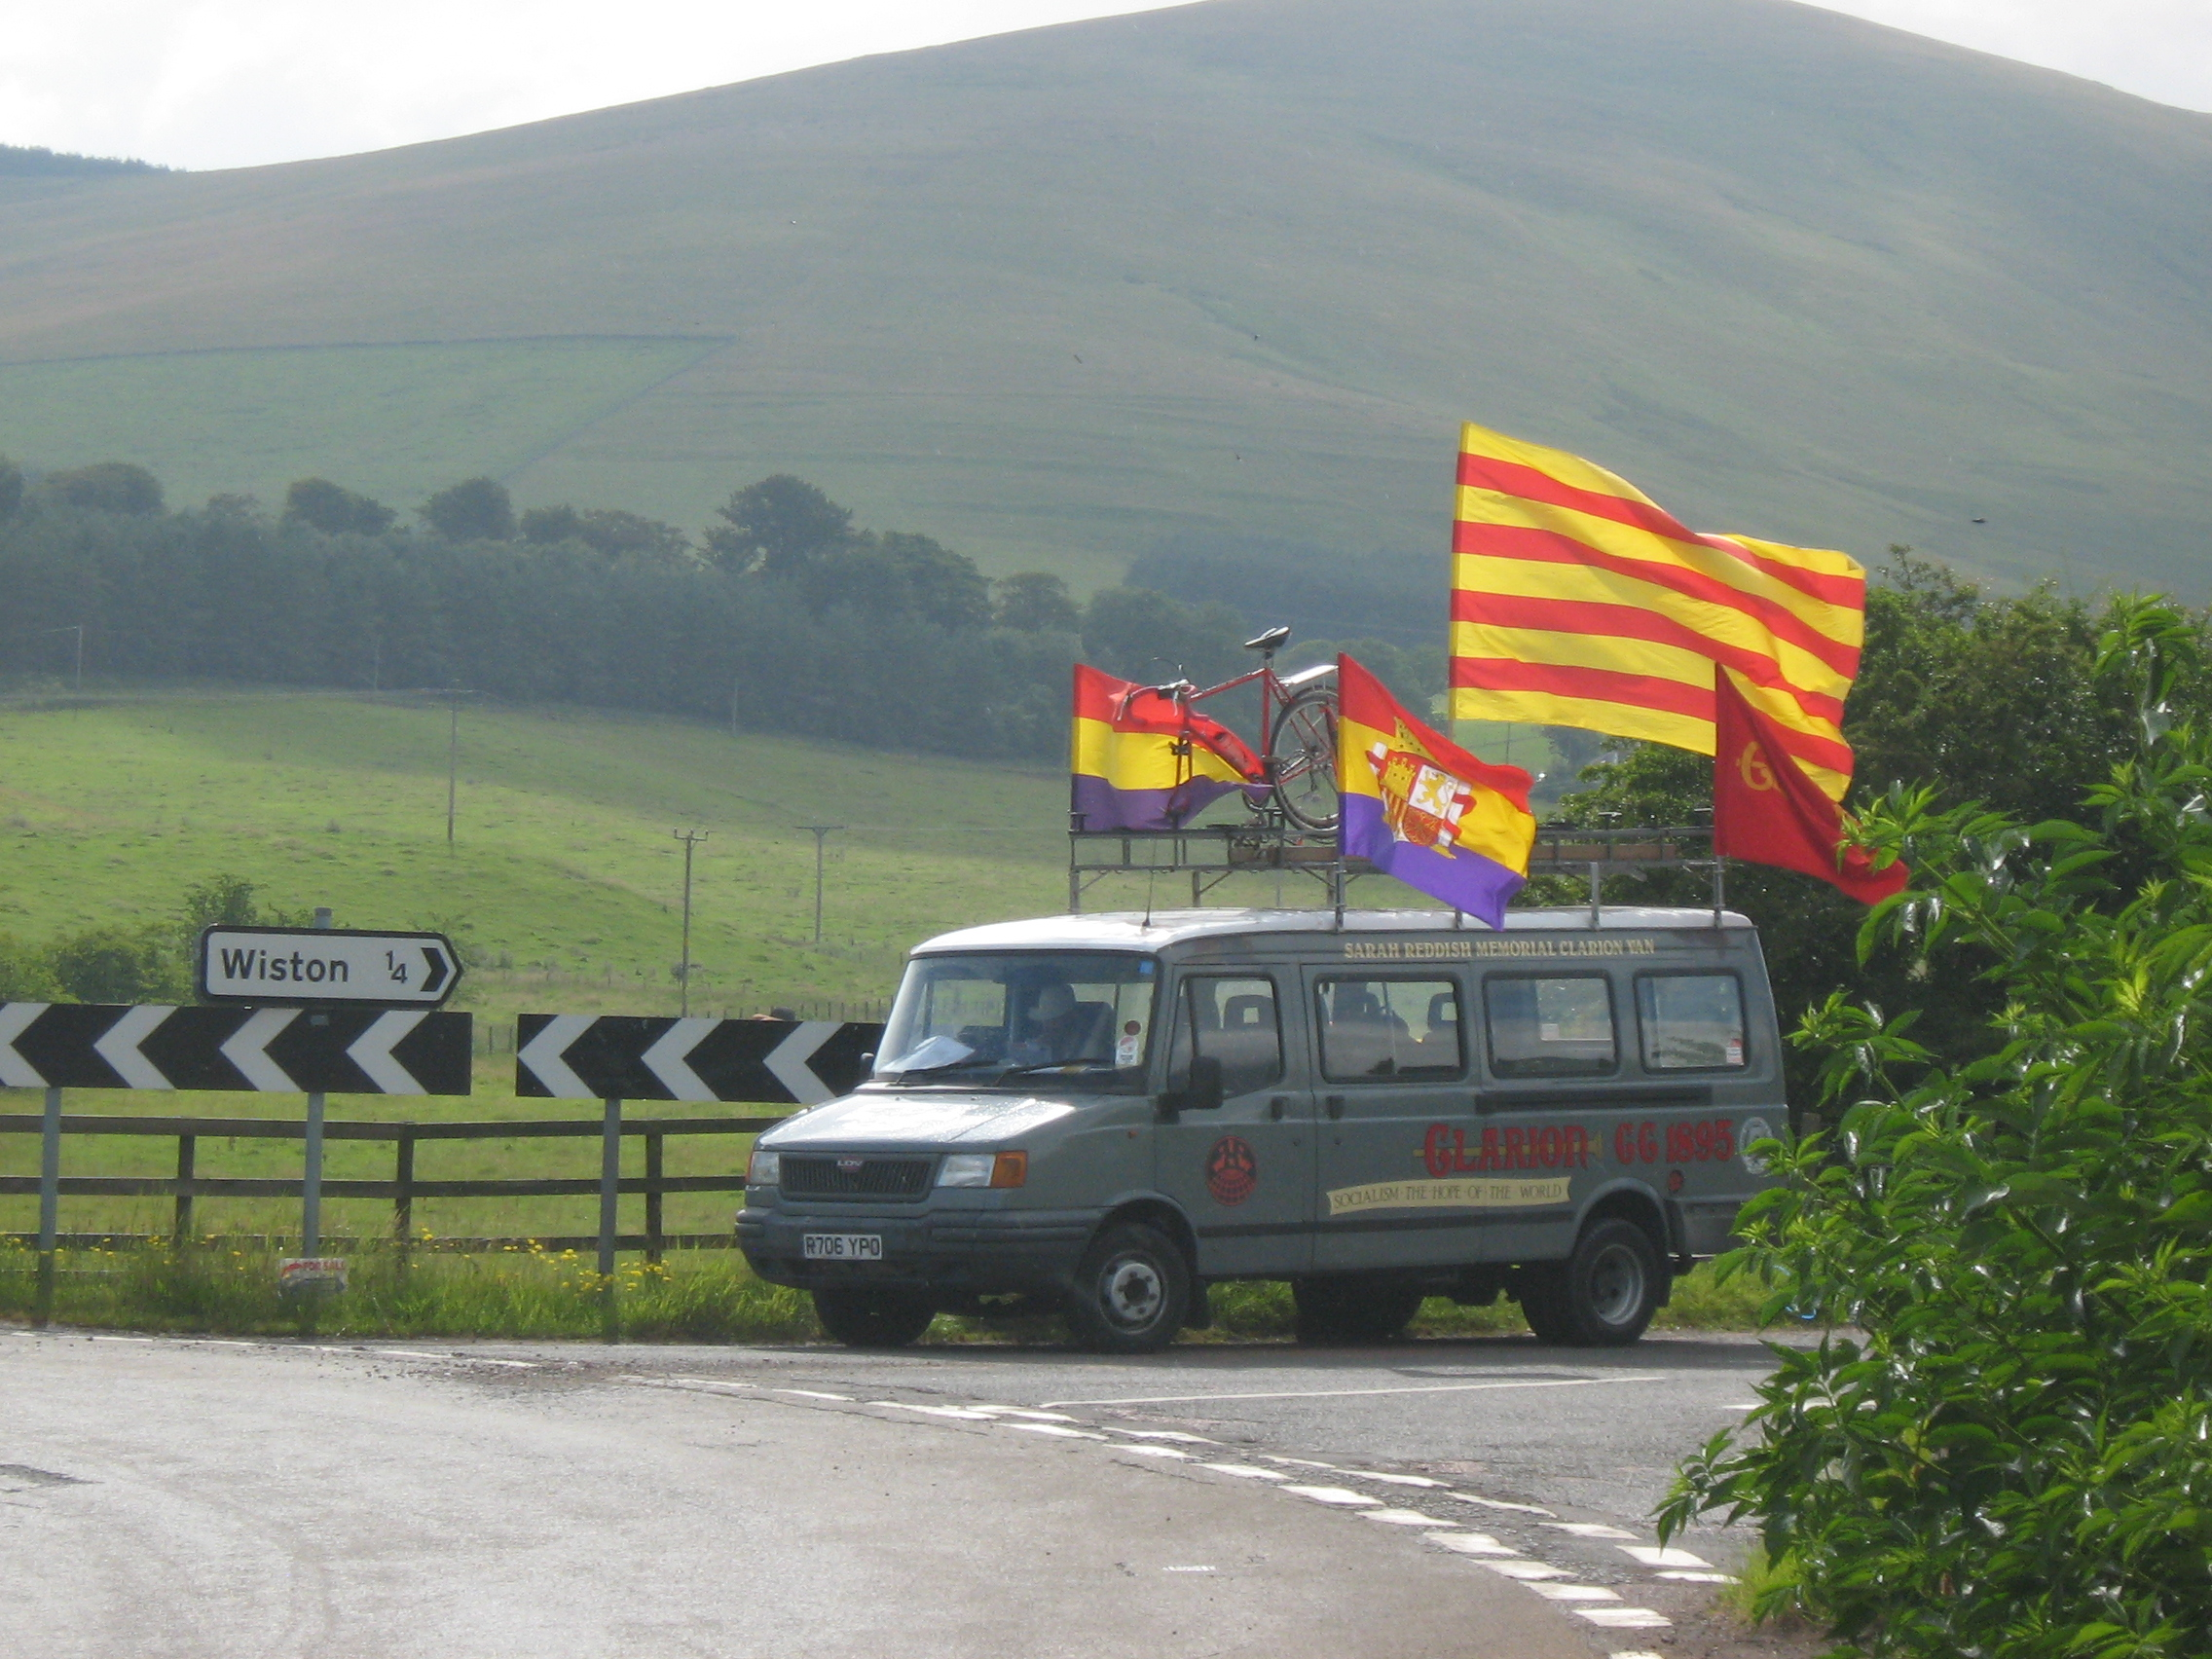 The support bus outside Wiston